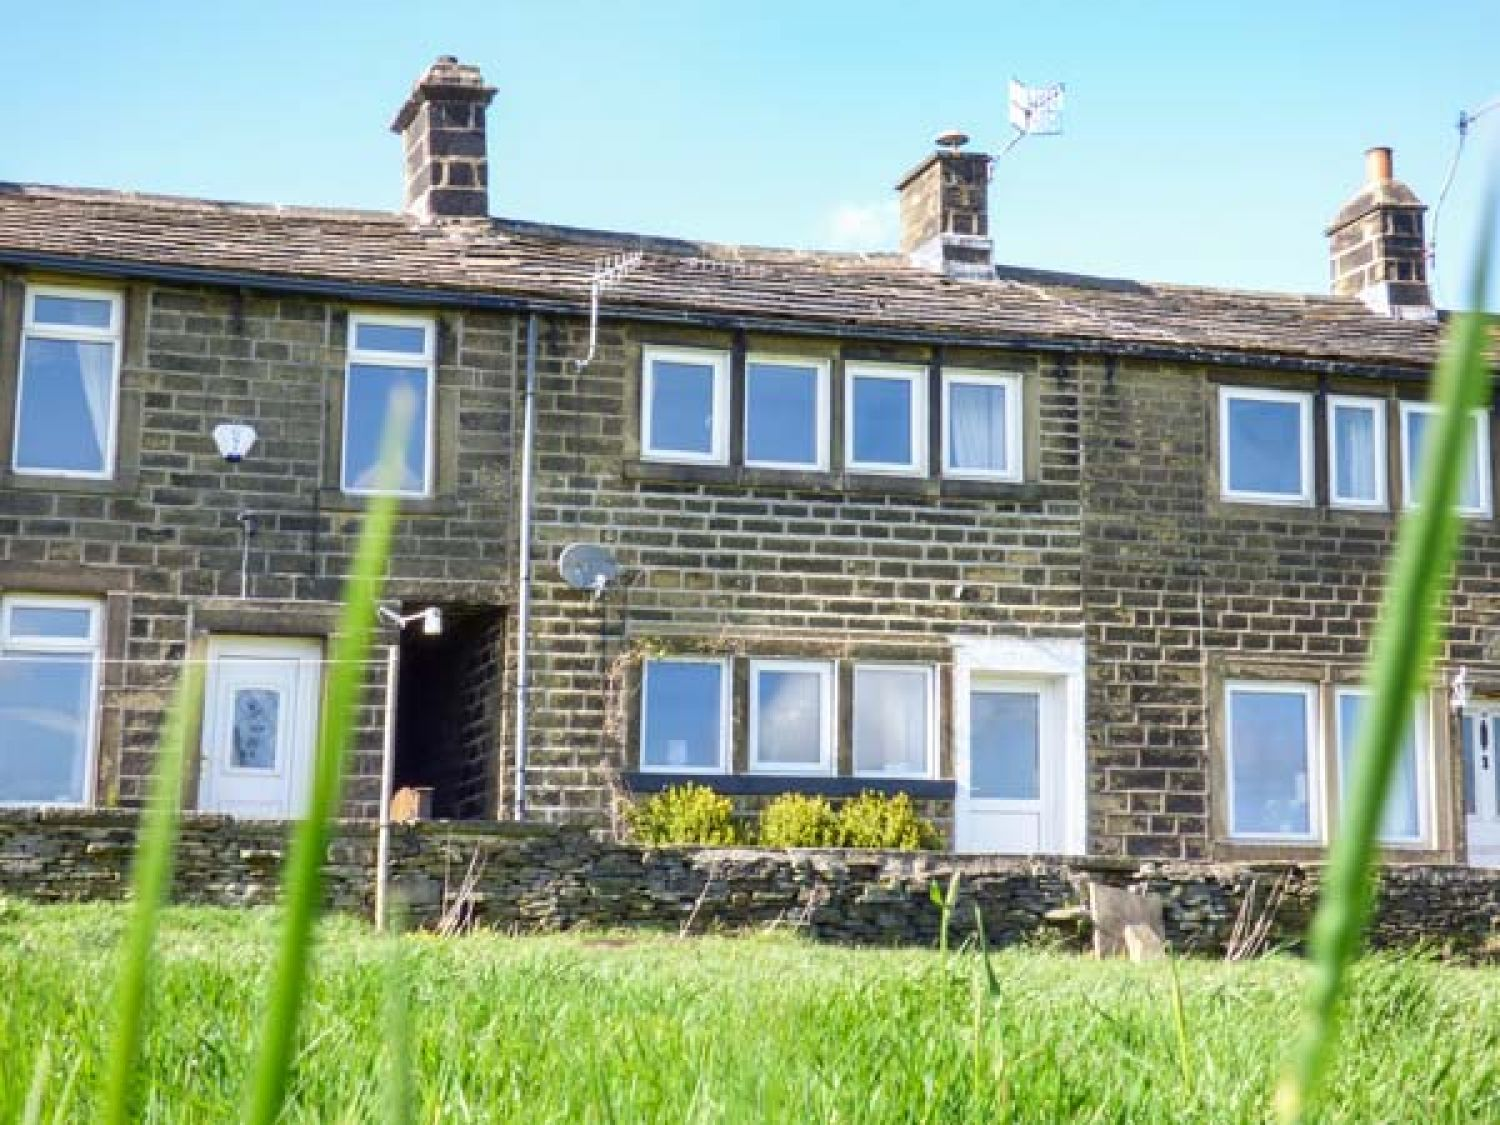 17 Moorside - Yorkshire Dales - 955197 - photo 1